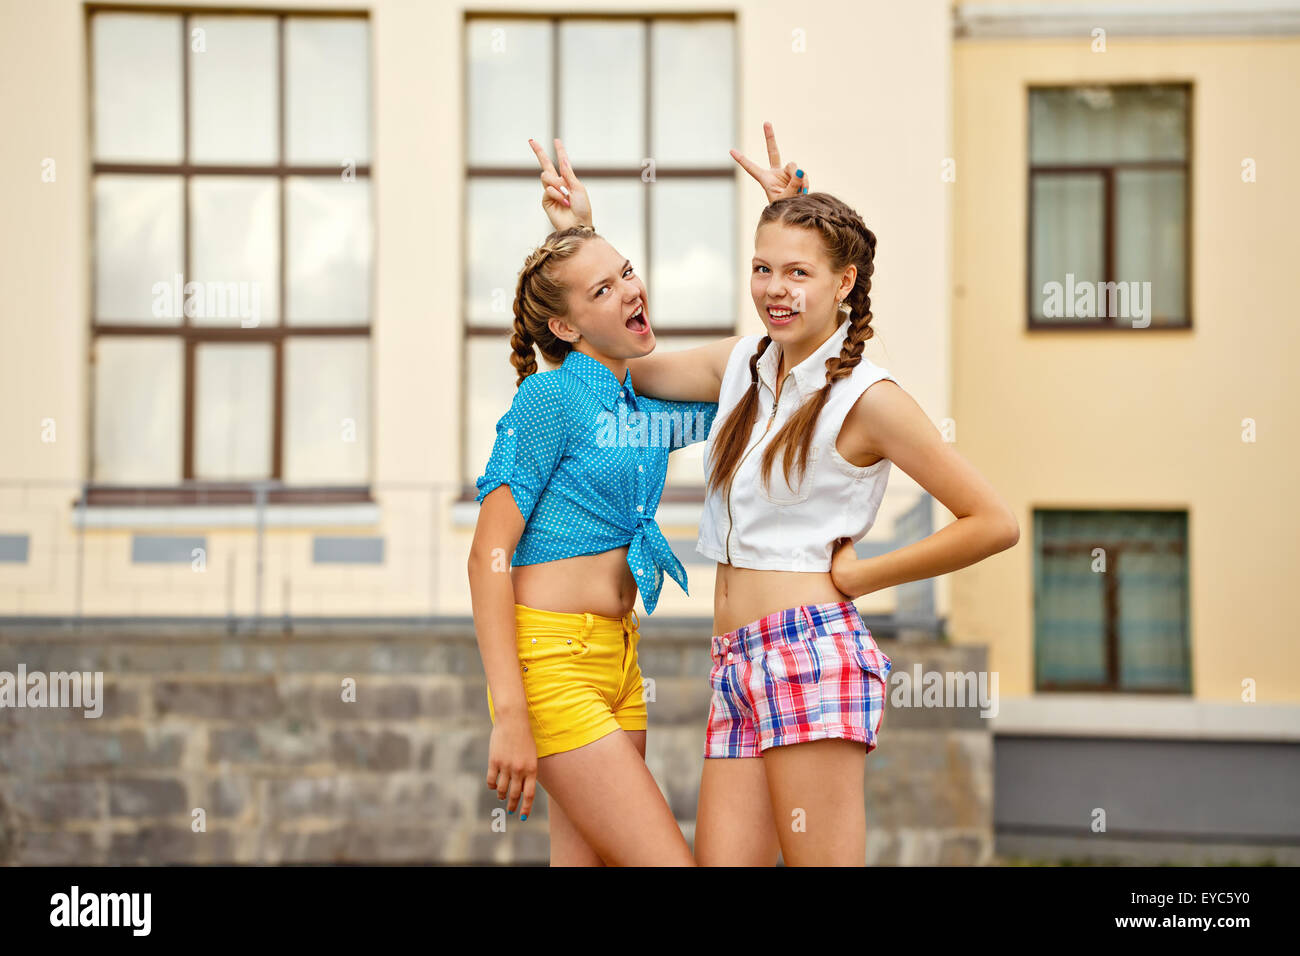 Look - Shorts summer for teenagers video